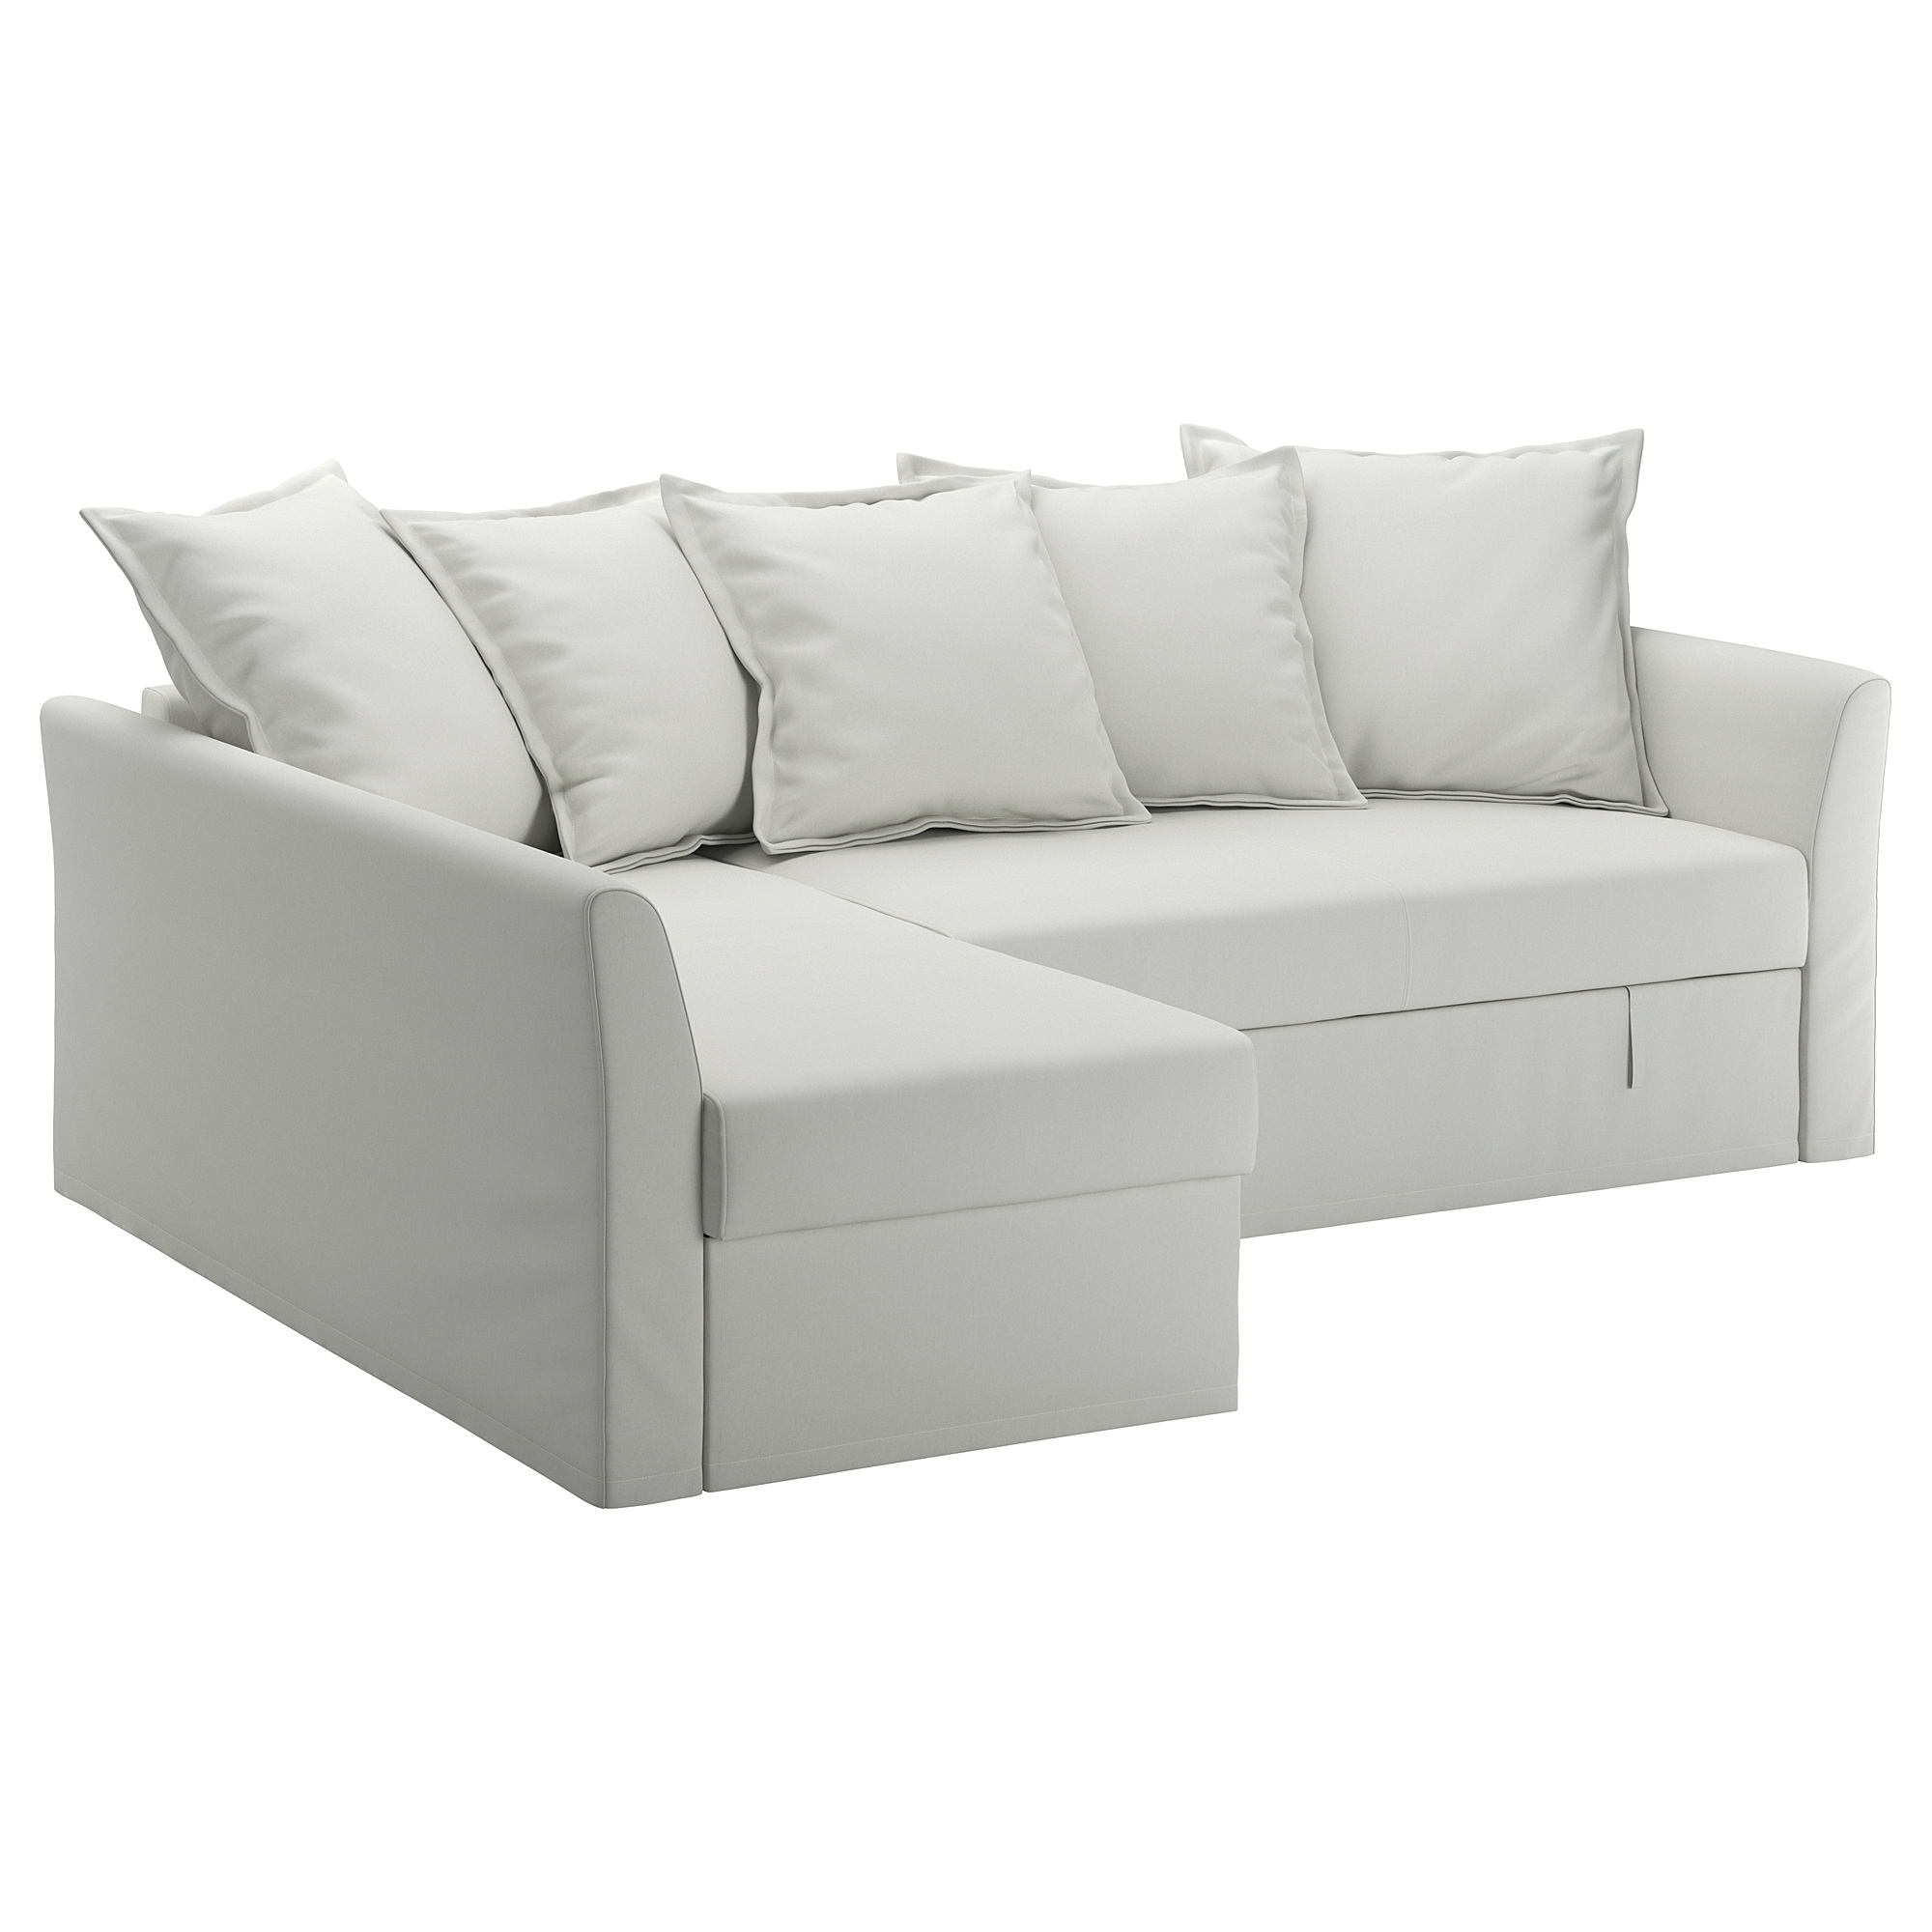 Jannamo Throughout Most Current Ikea Loveseat Sleeper Sofas (View 12 of 15)